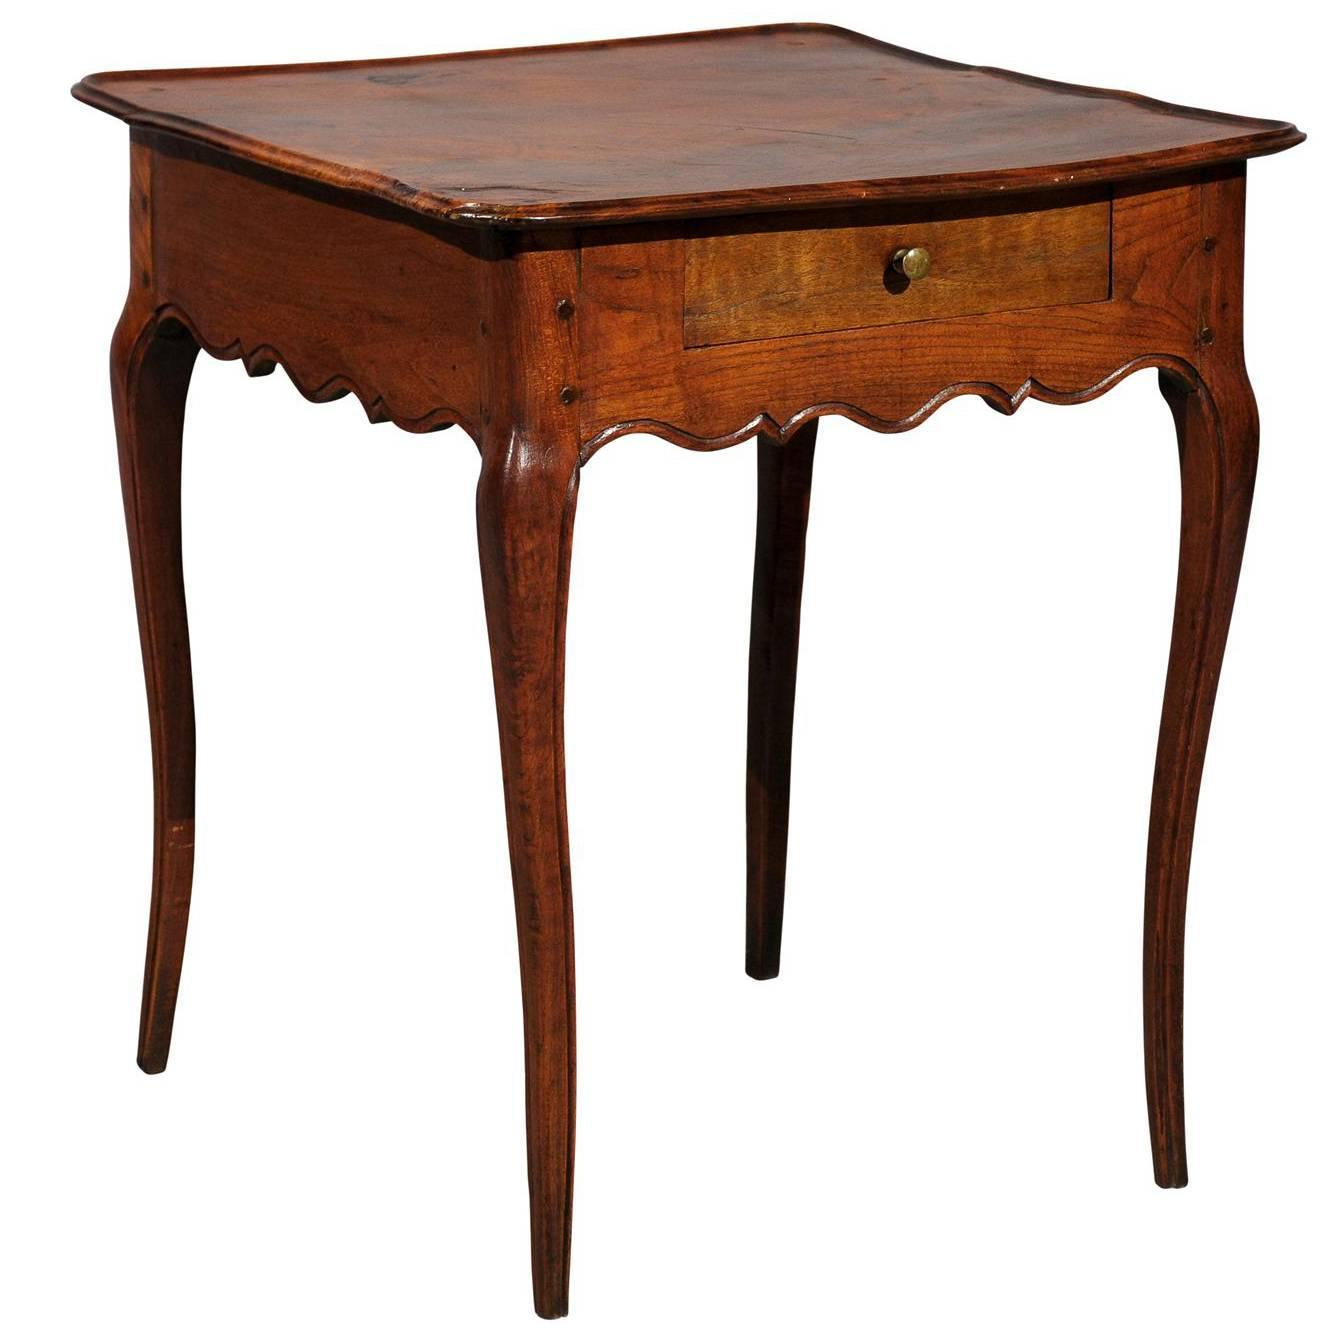 Louis xv french walnut square side table at 1stdibs - Table louis xv ...